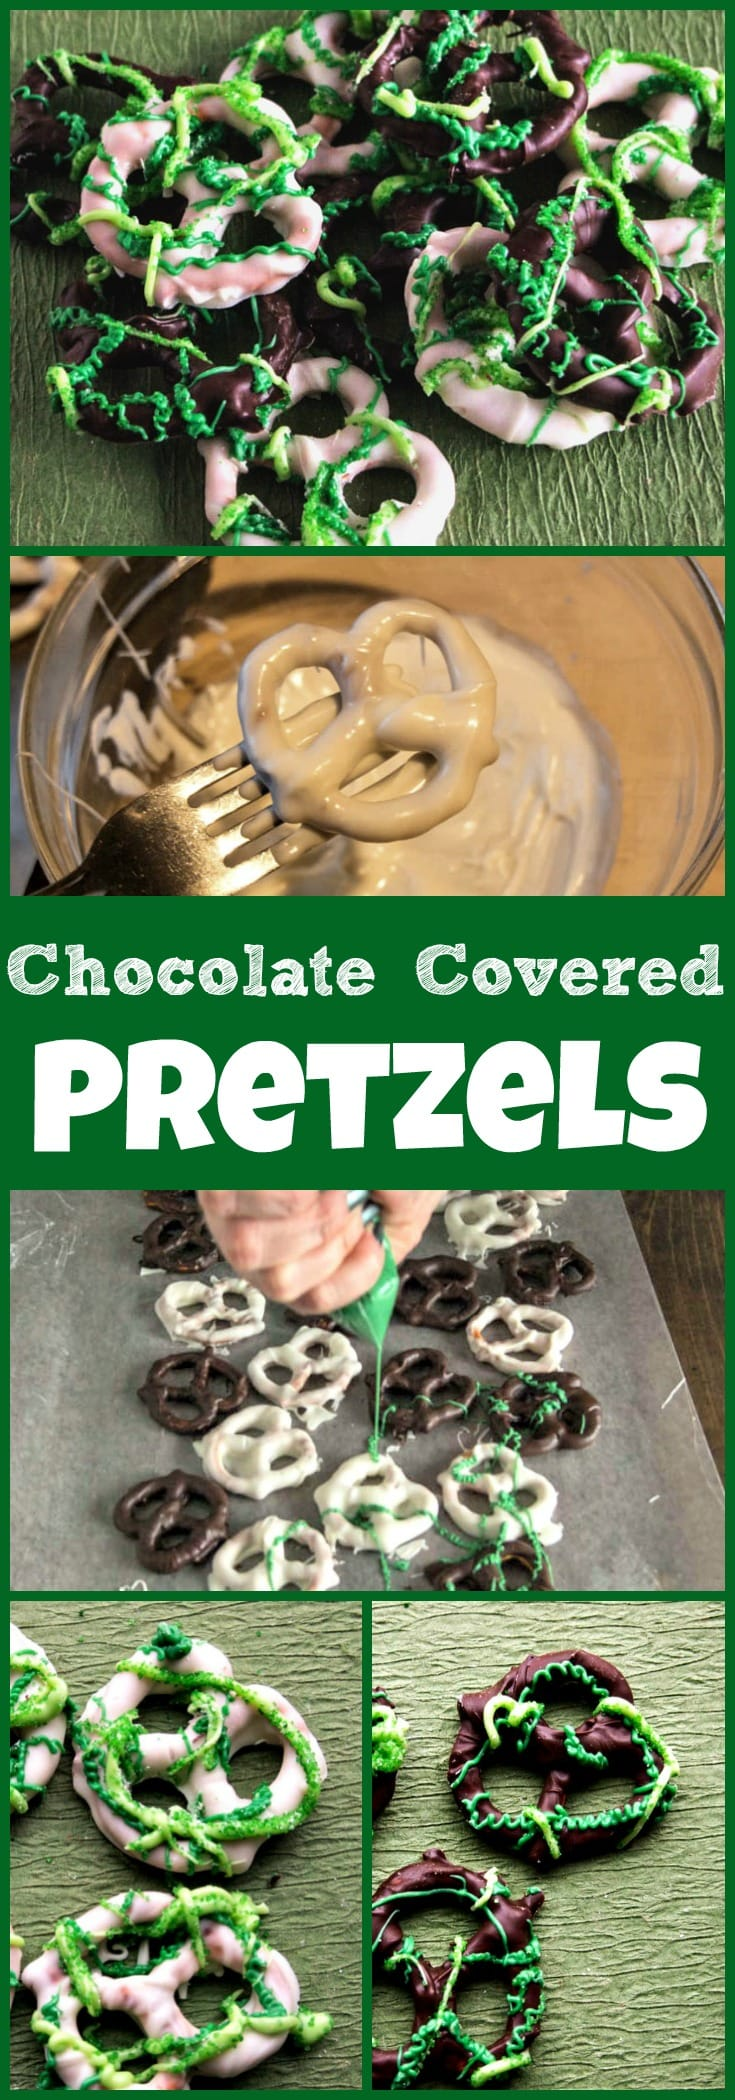 Chocolate Covered Pretzels recipe for St. Patrick's Day - an easy sweet and salty treat